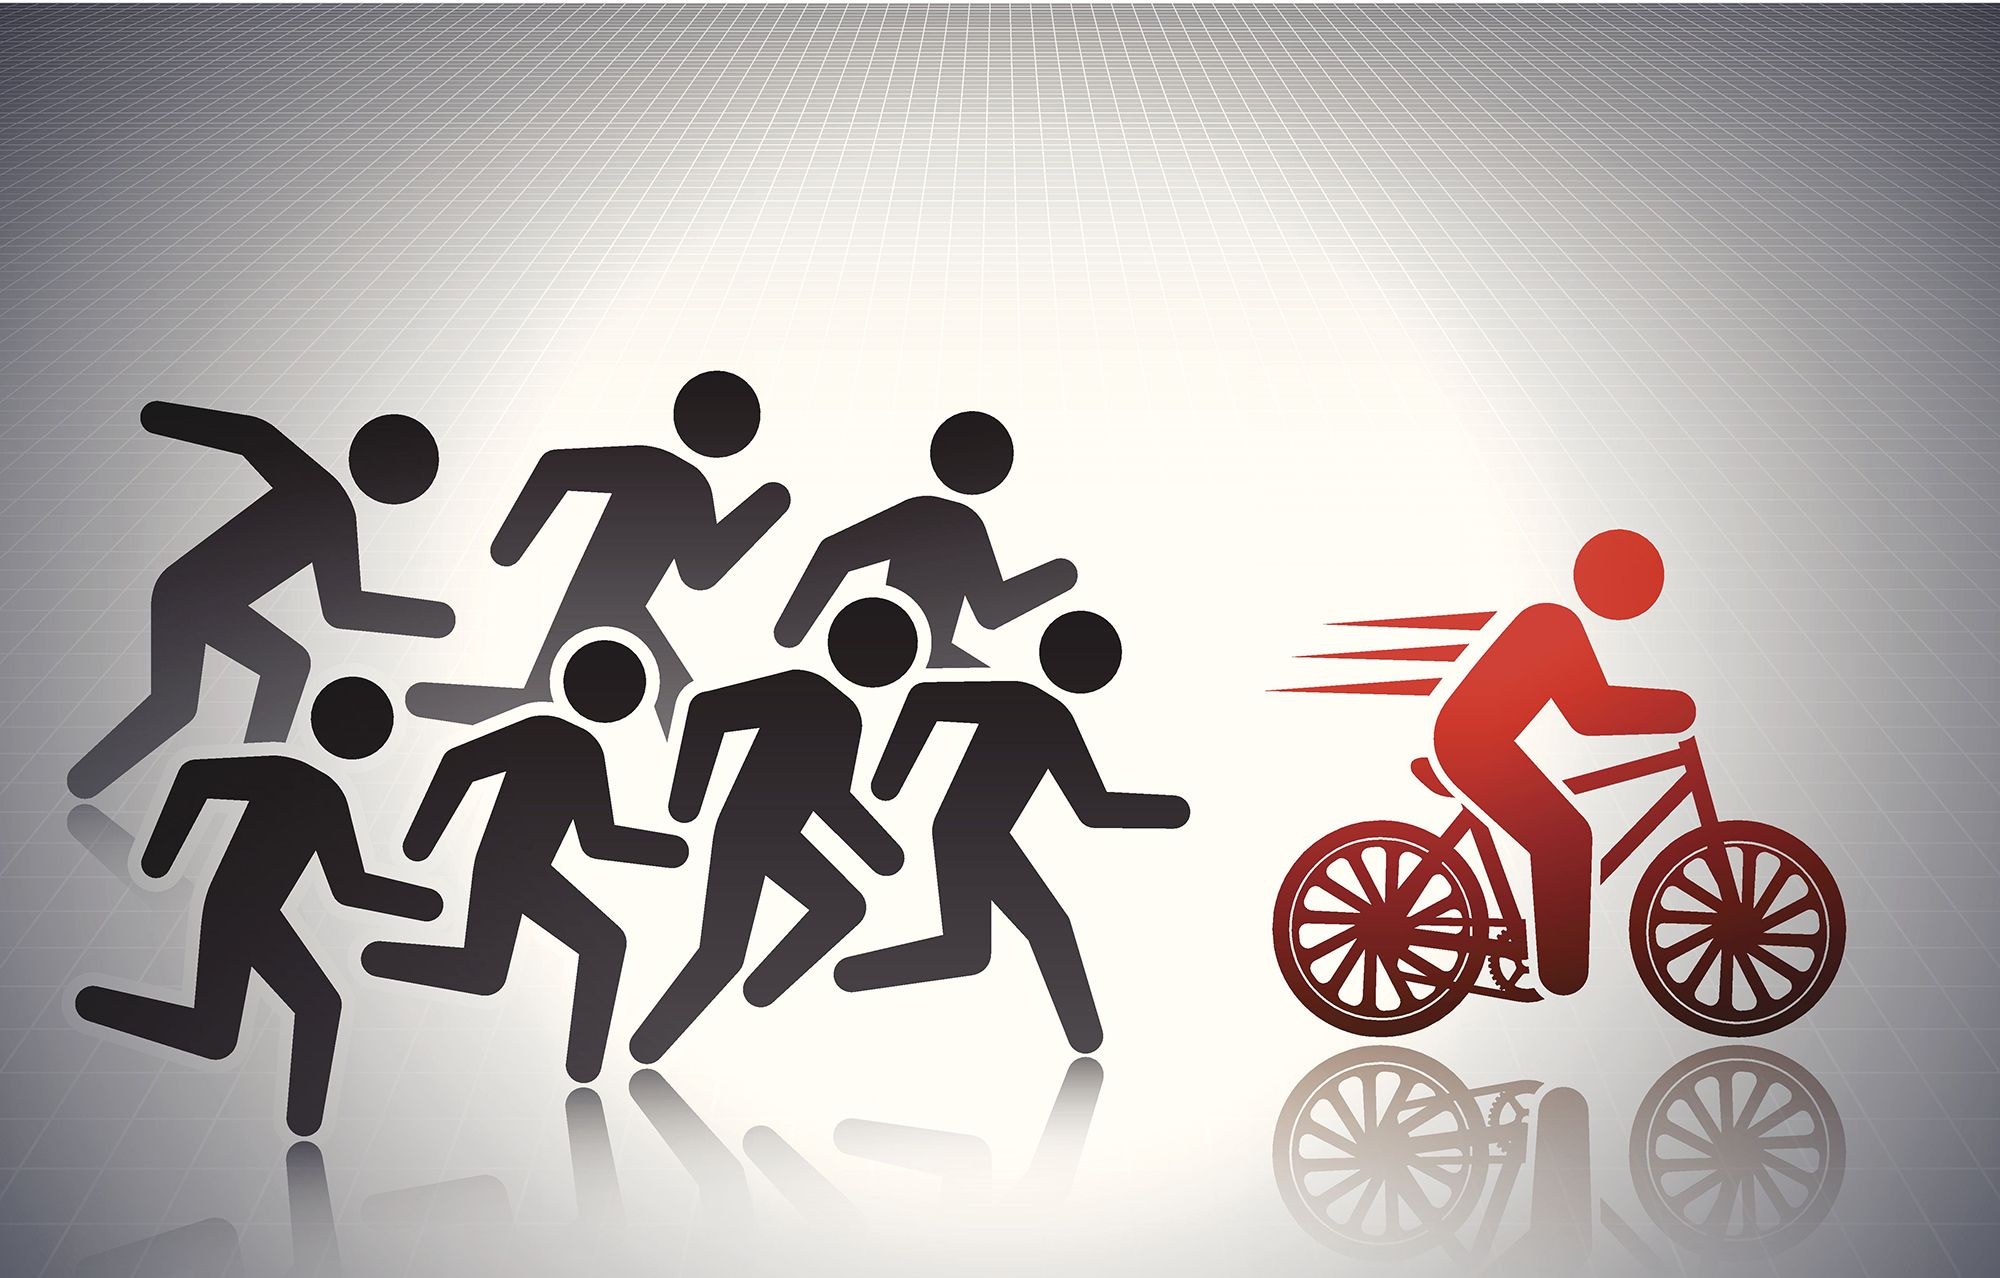 Rapid adaptation and agility are required to handle the pace of constant change